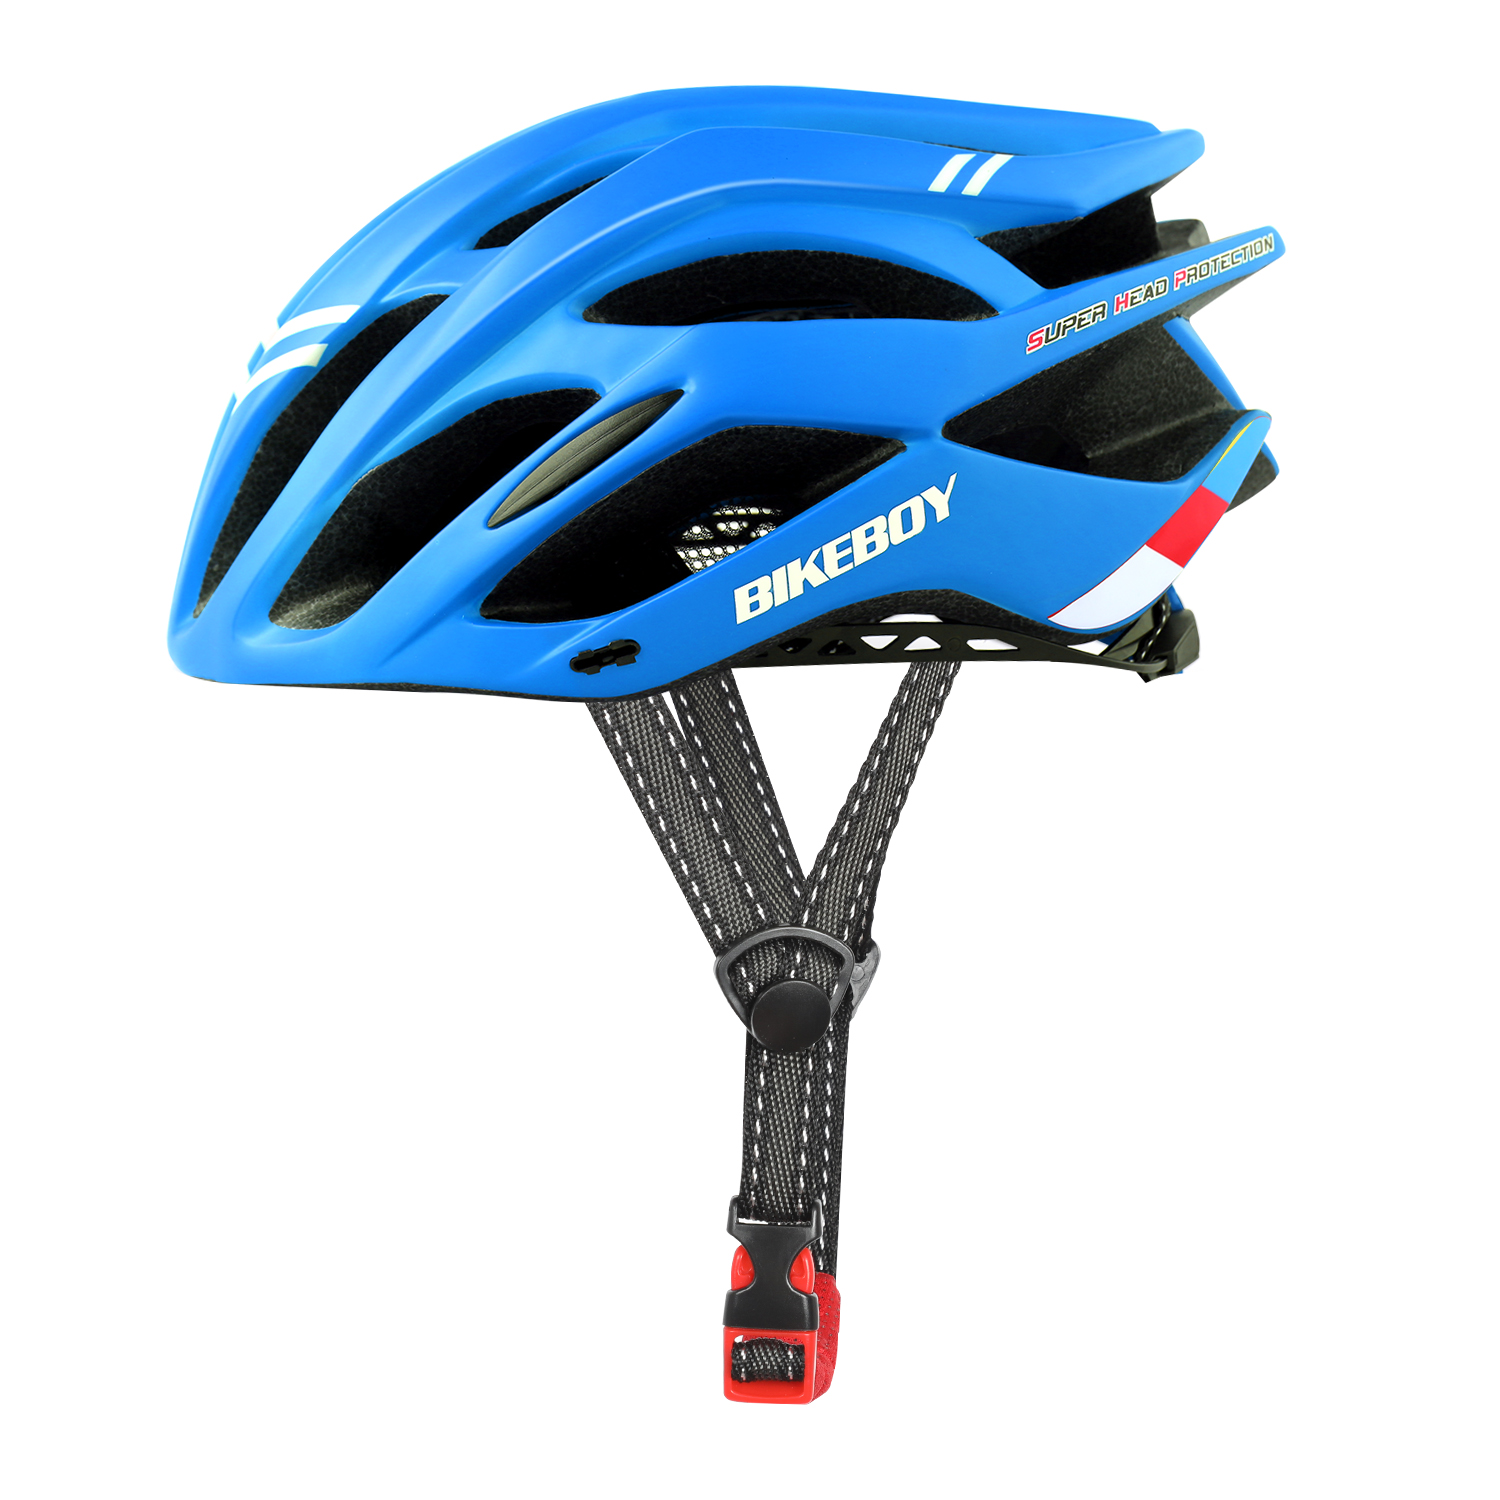 [Indonesia Direct] Men Women Piece Molding Cycling Helmet for Head Protection Bikes Equipment  blue_One size